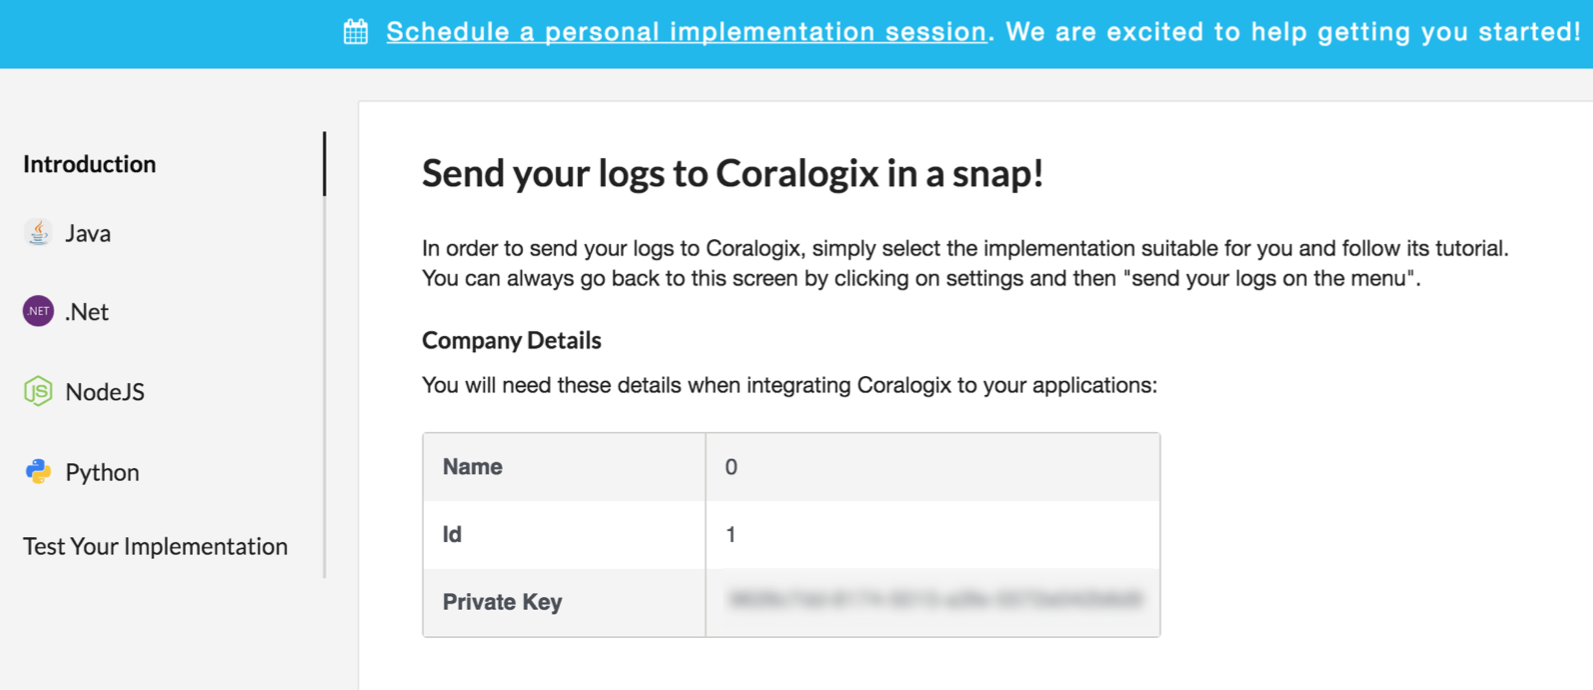 A guide for your first steps with Coralogix